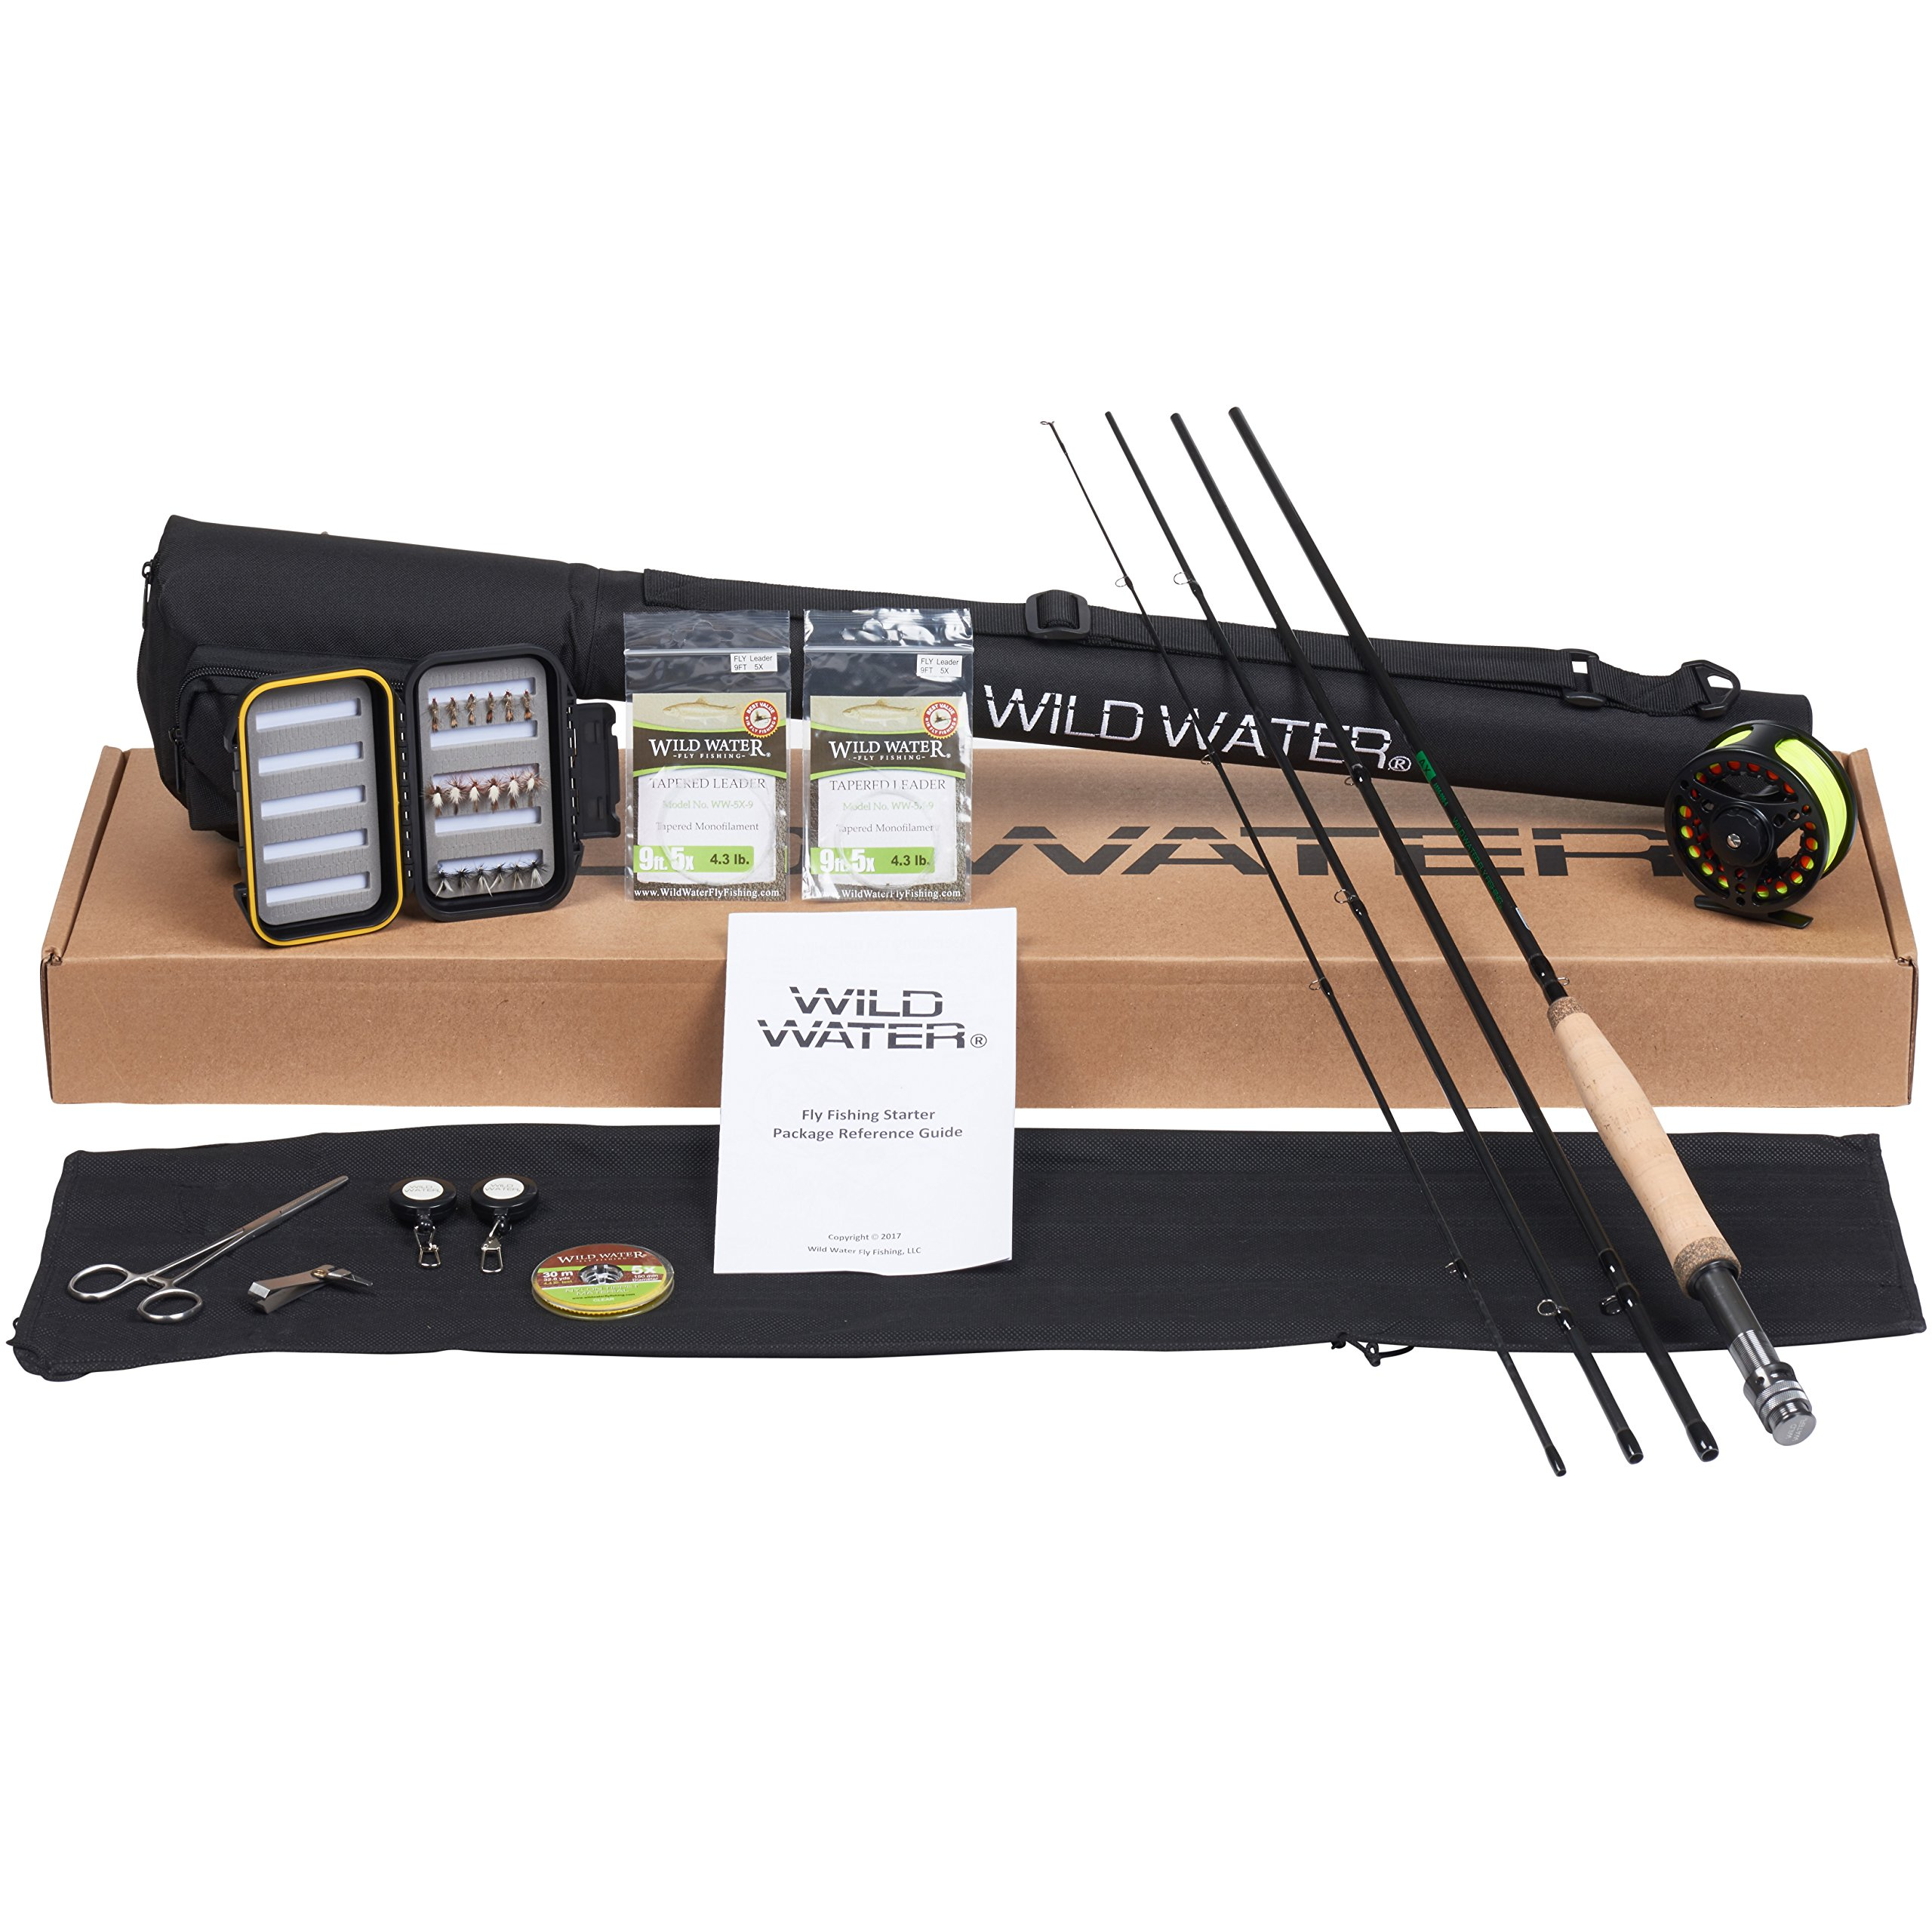 DELUXE Wild Water AX56-090-4 Complete Starter Package by Wild Water